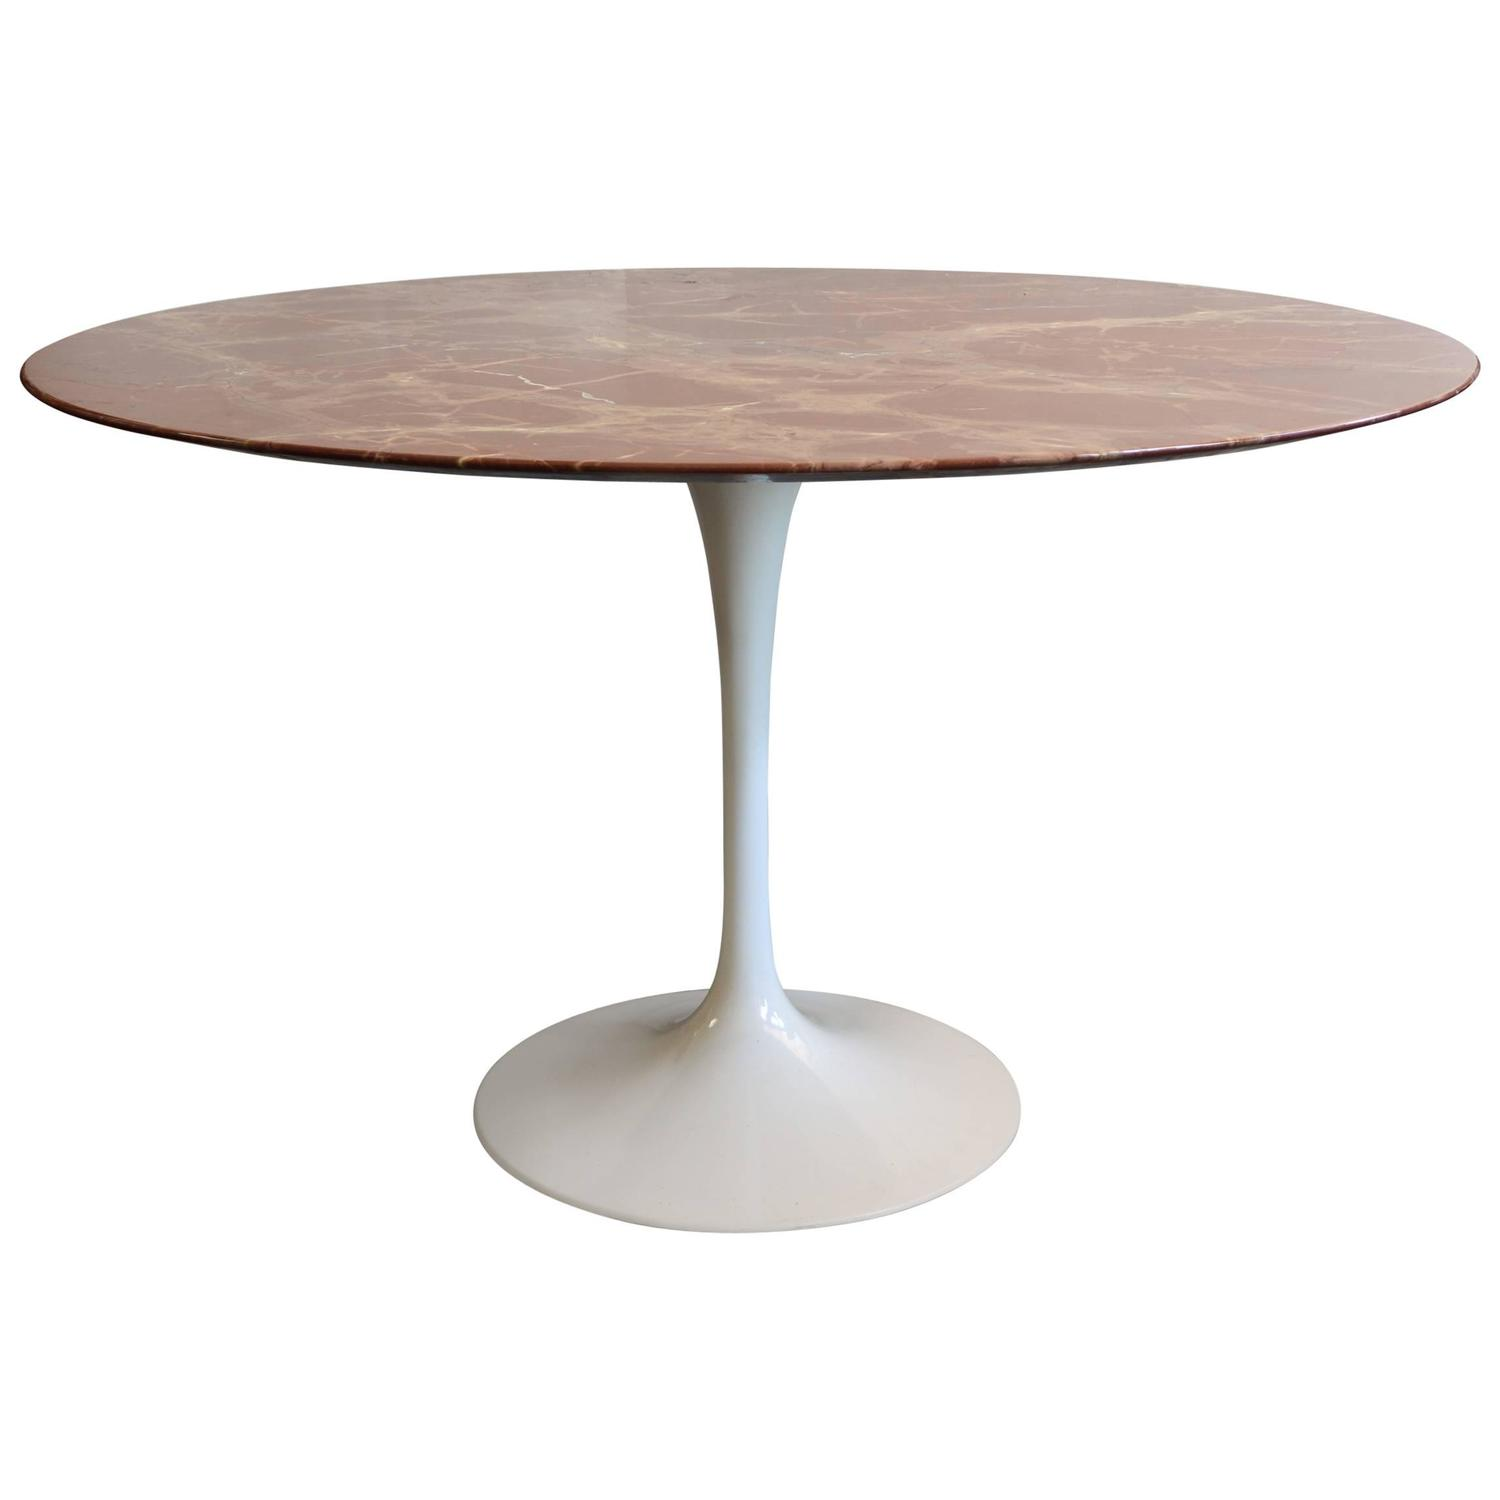 Saarinen rose marble tulip dining table at 1stdibs for Tulip dining table